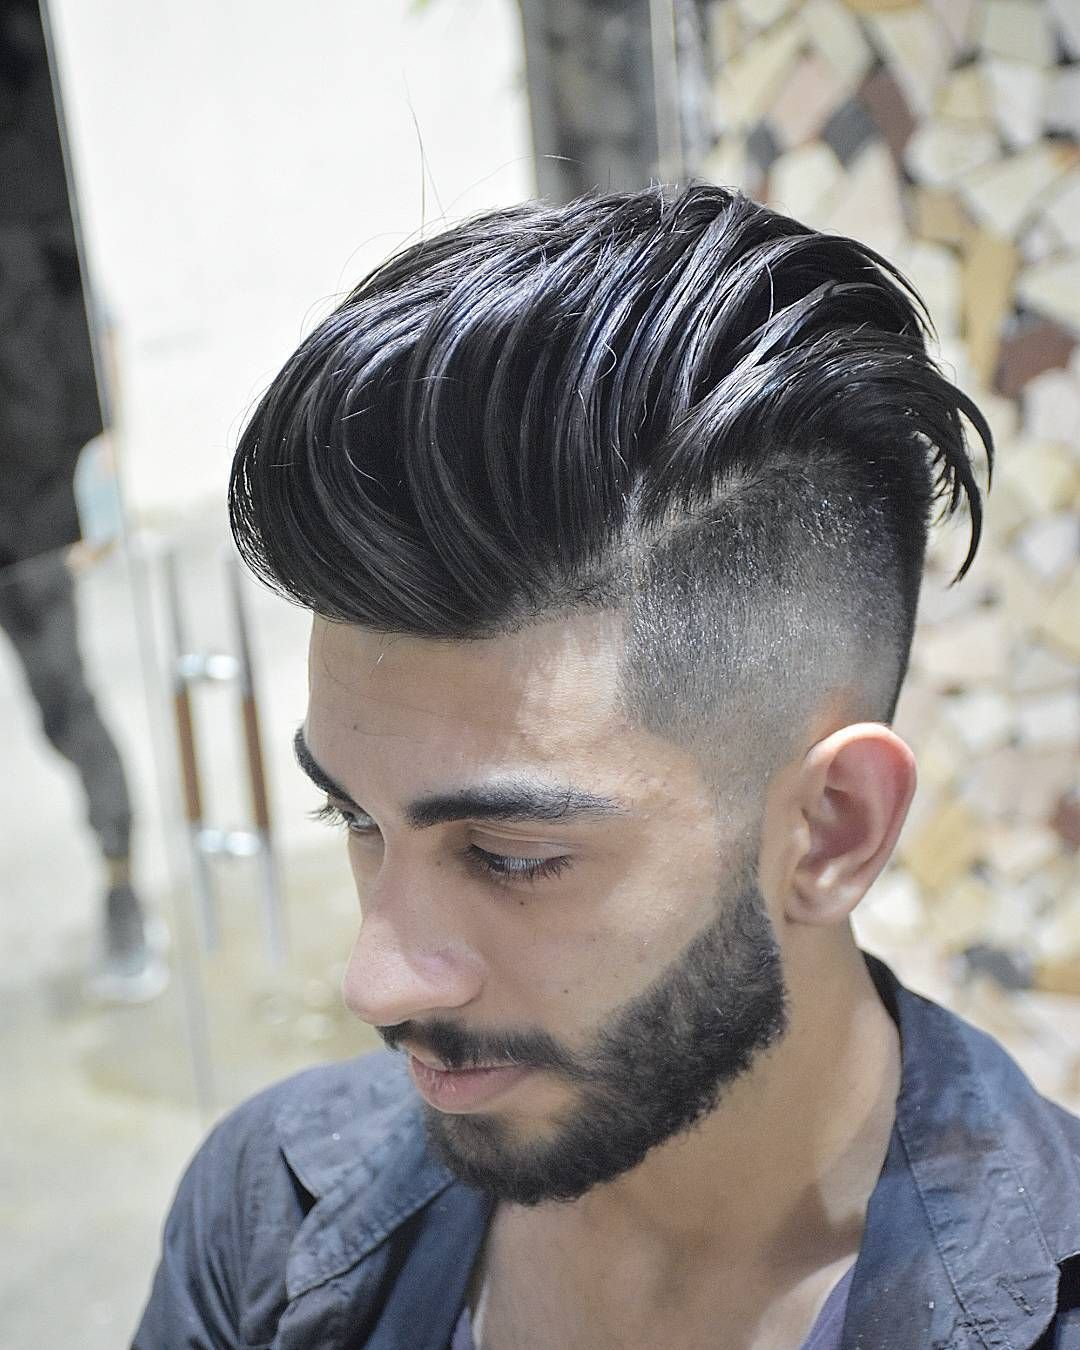 nice 50 Brilliant Undercut Hairstyles for Men - Refined and Classy Designs for a Trendy Man Check more at http://stylemann.com/best-undercut-hairstyles-for-men/